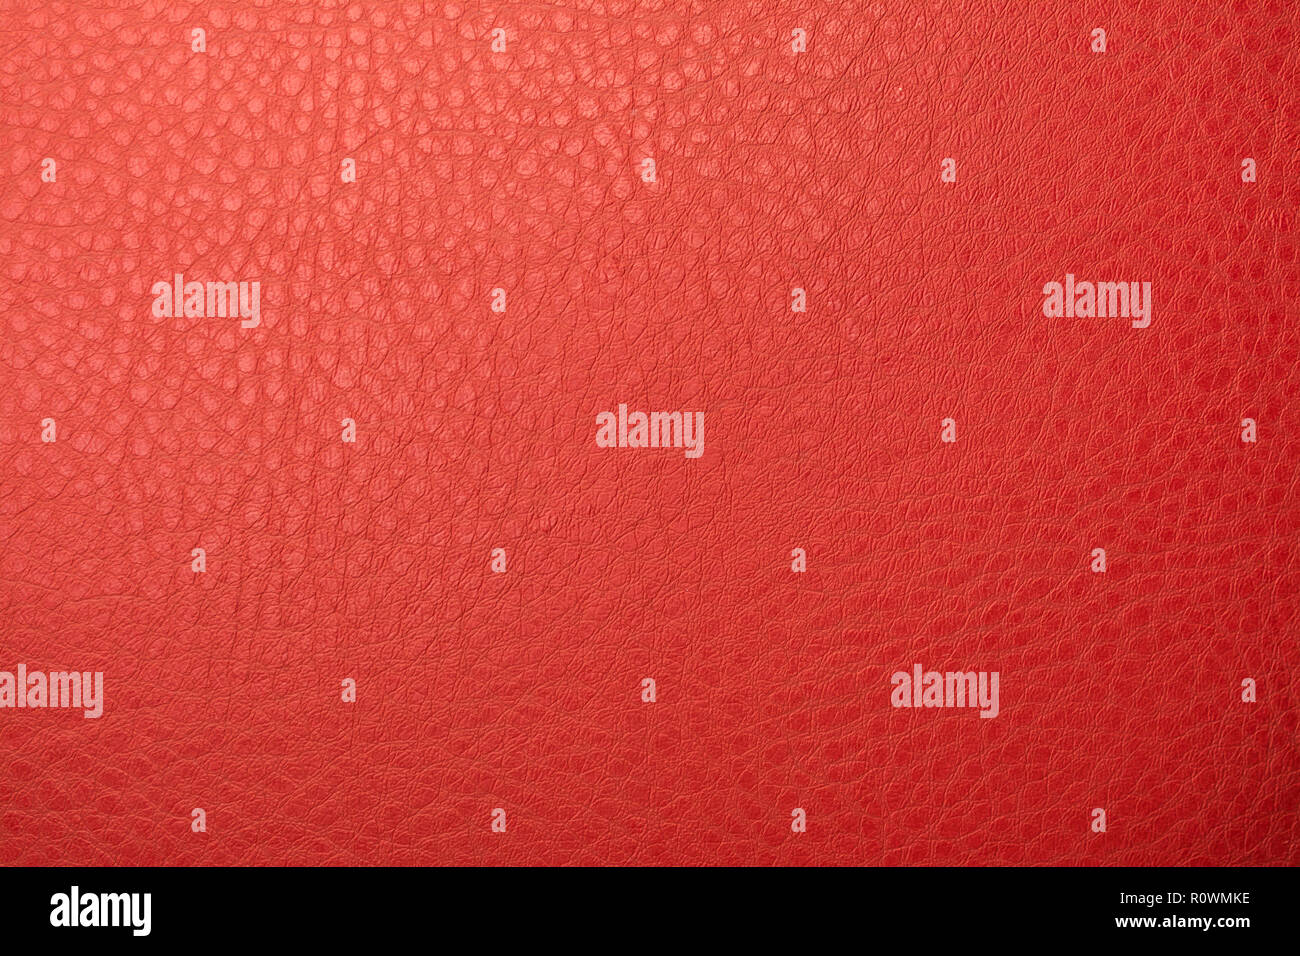 Red leather material texture background closeup - Stock Image